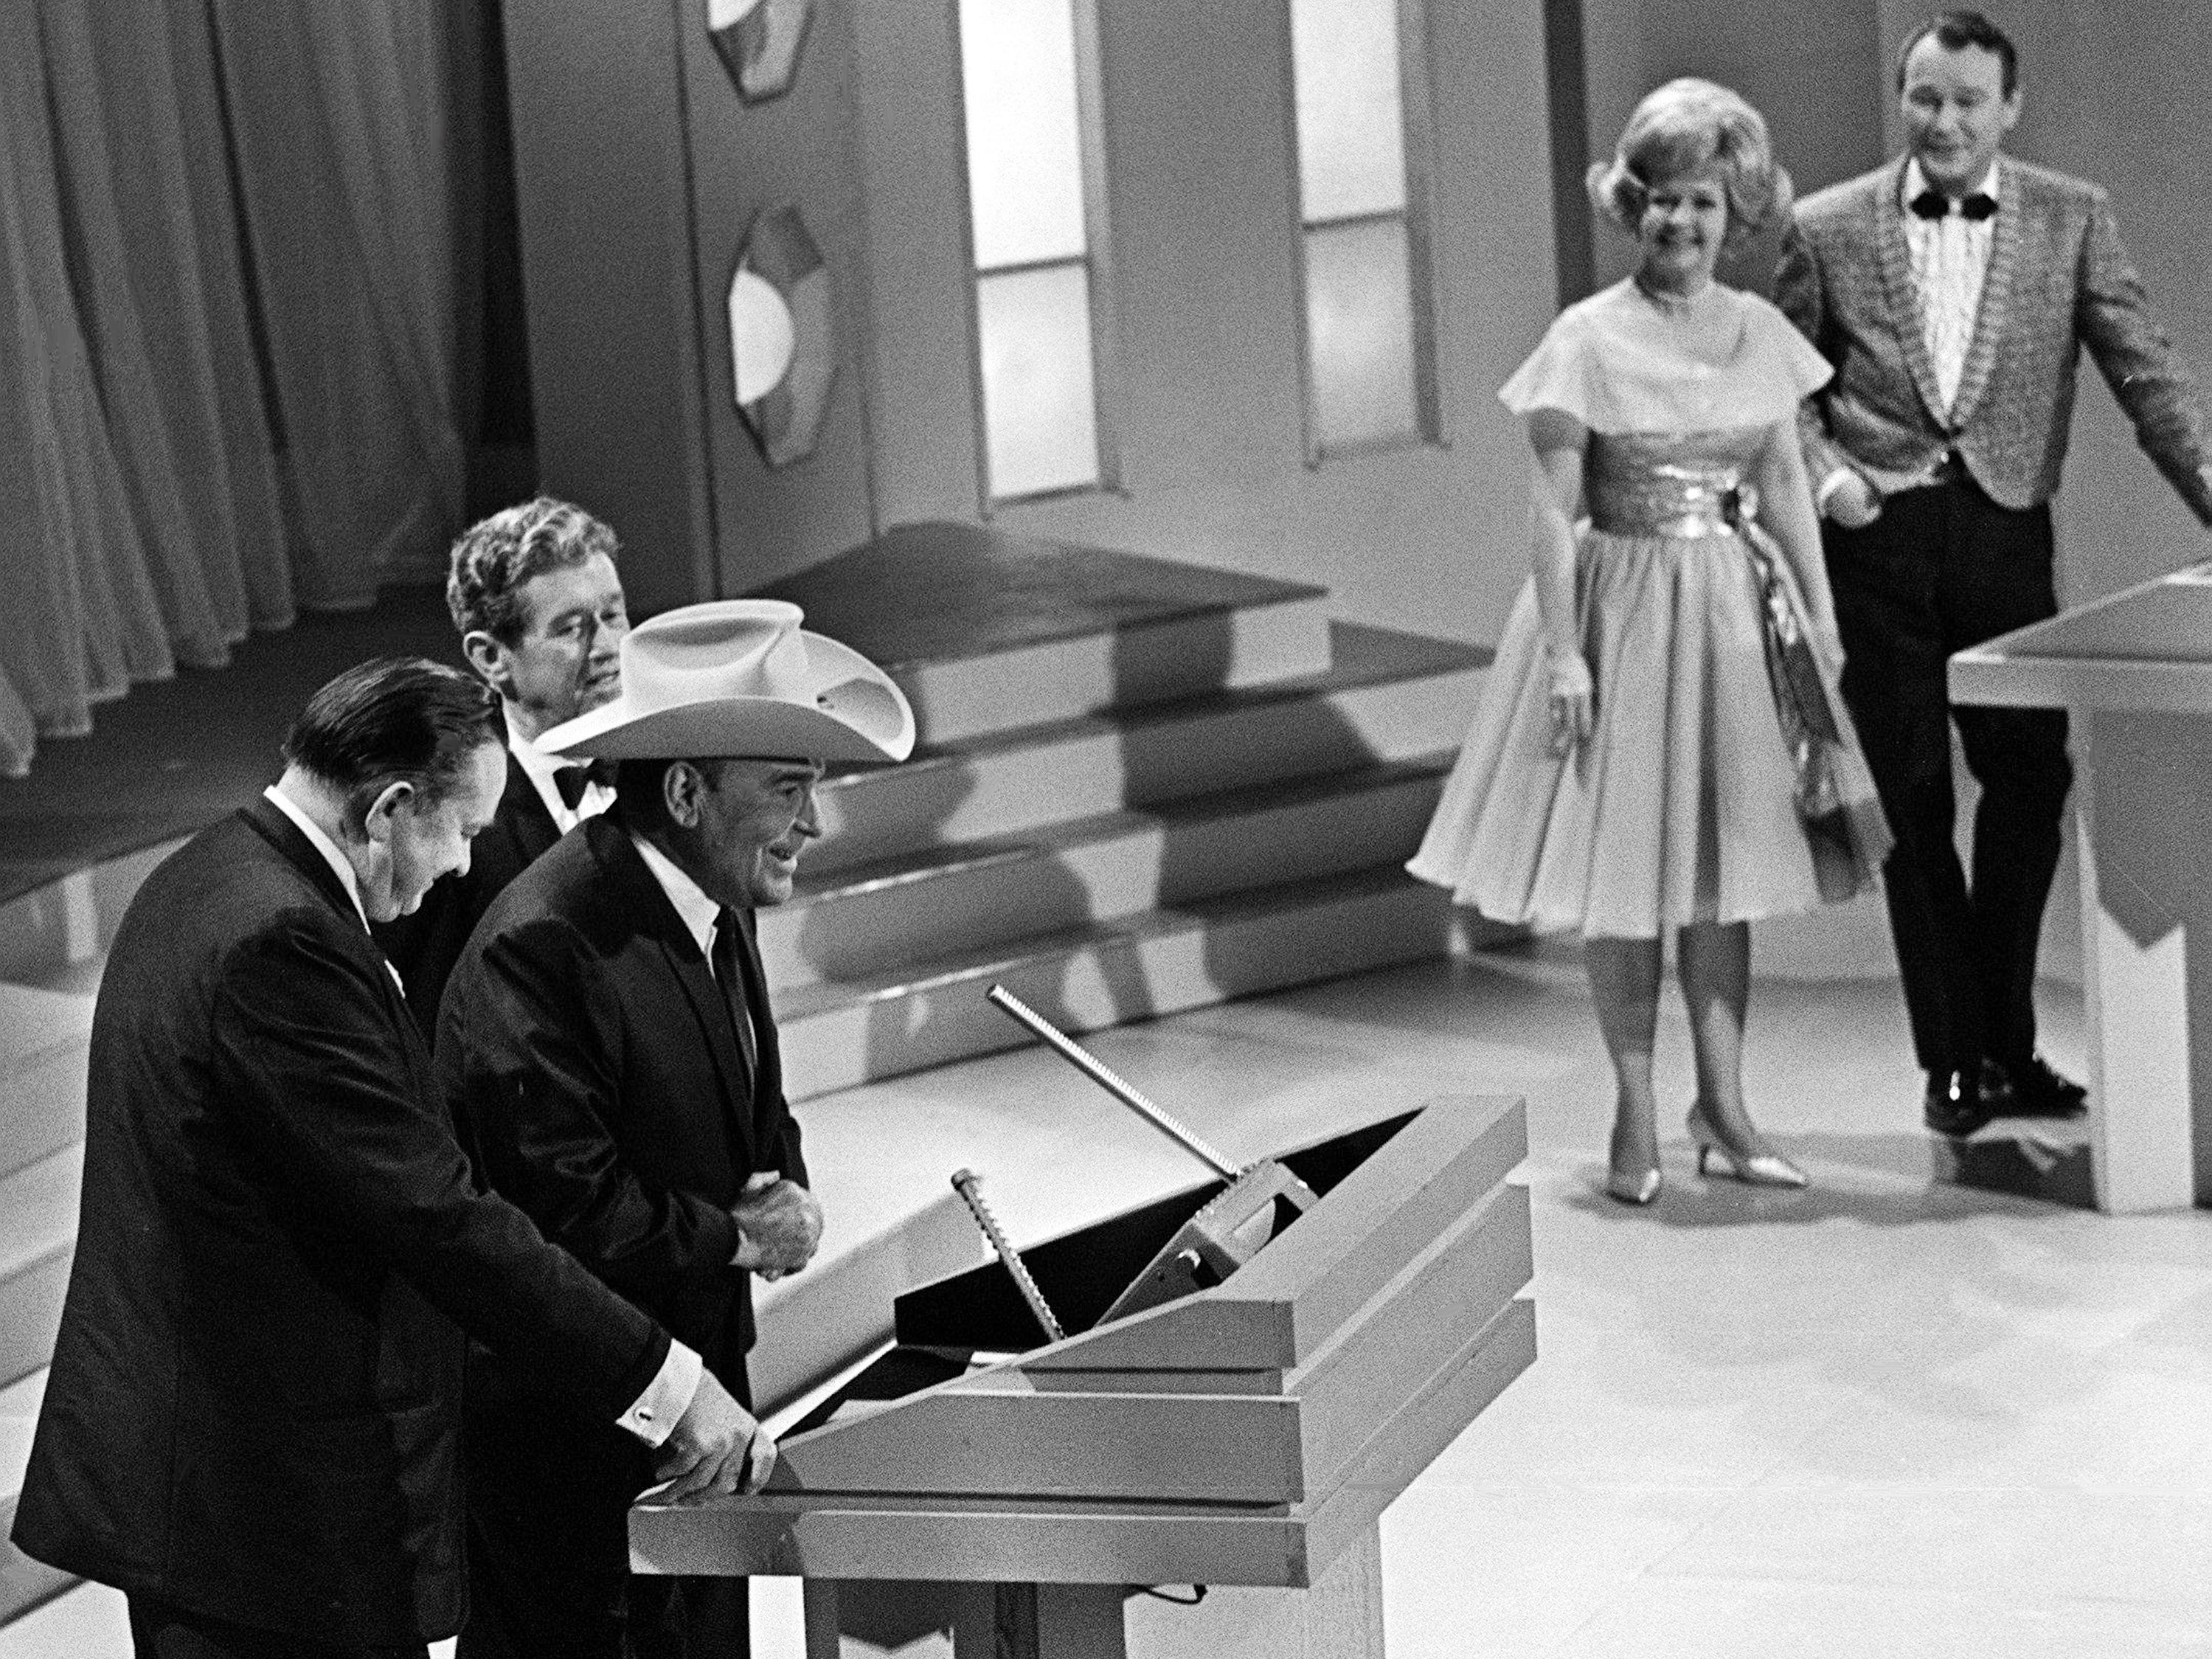 """""""Texas Playboy"""" Bob Wills speaks after being named to the Country Music Hall of Fame during the second annual CMA Awards show at the Ryman Auditorium on Oct. 18, 1968. Tex Ritter, left, and Roy Acuff made the presentation. In the background looking on are emcees Roy Rogers and Dale Evans."""